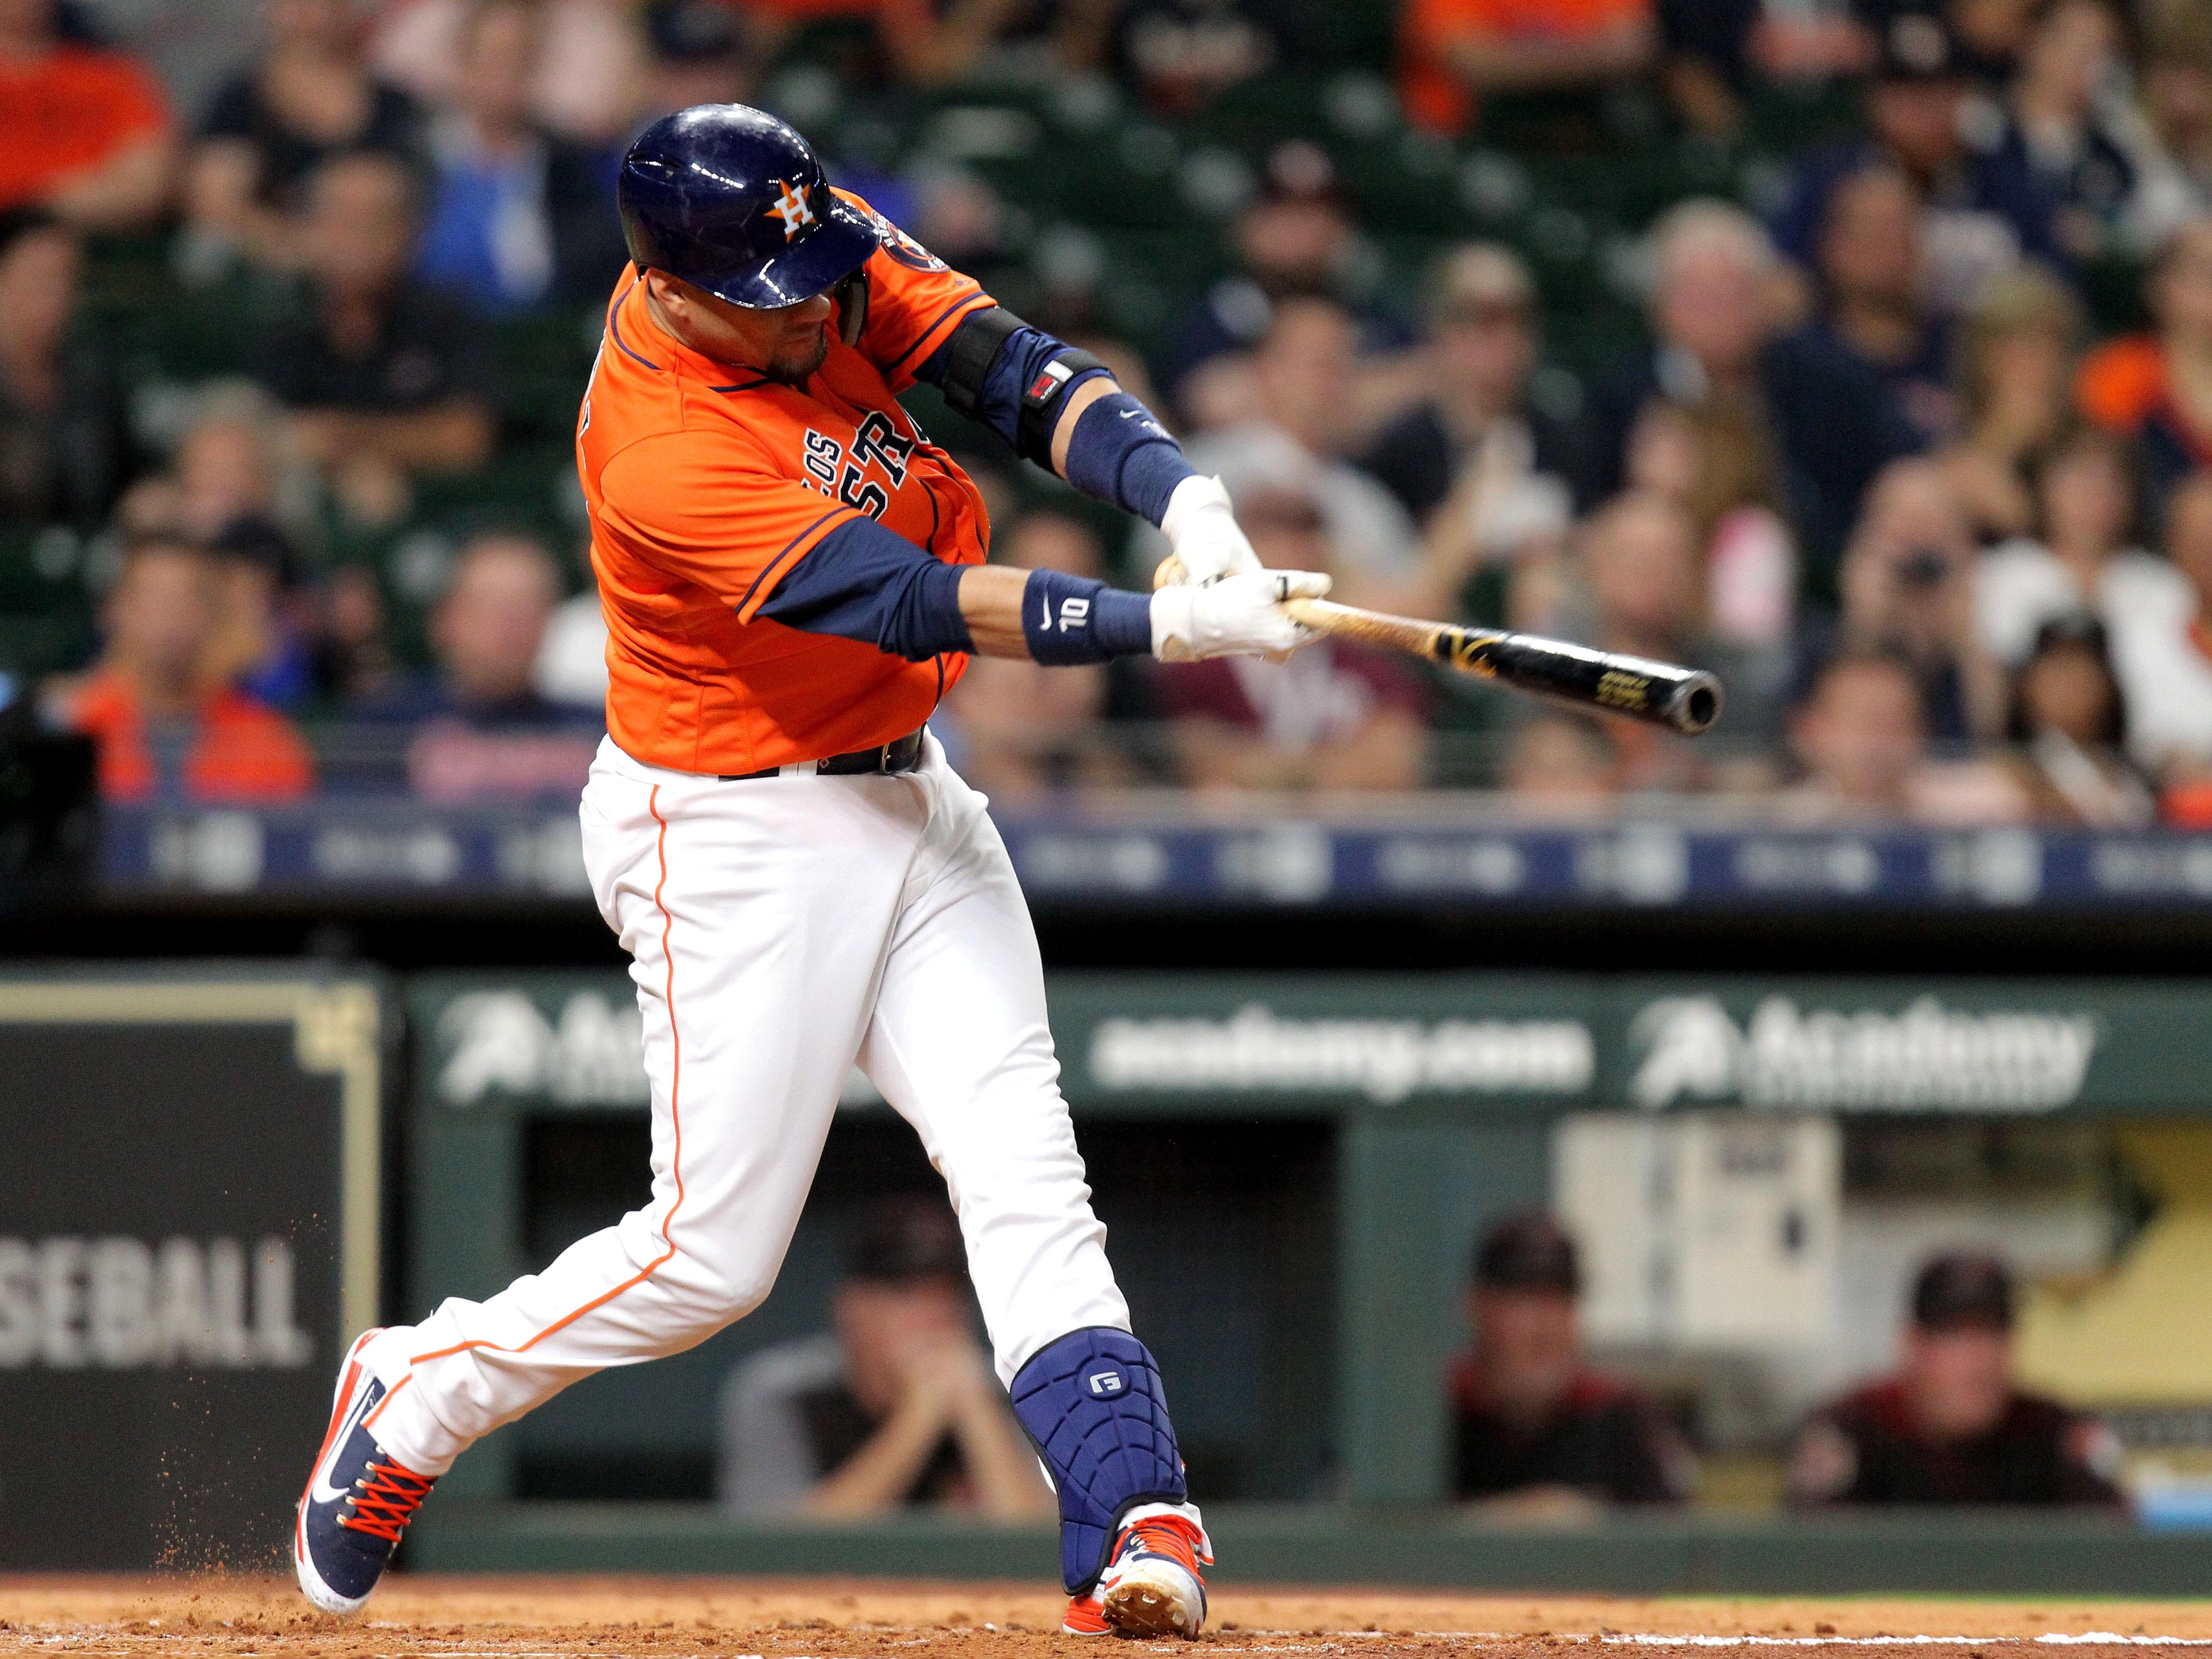 Sep 14, 2018: Houston Astros first baseman Yuli Gurriel (10) hits an RBI single to left field against the Arizona Diamondbacks during the first inning at Minute Maid Park.